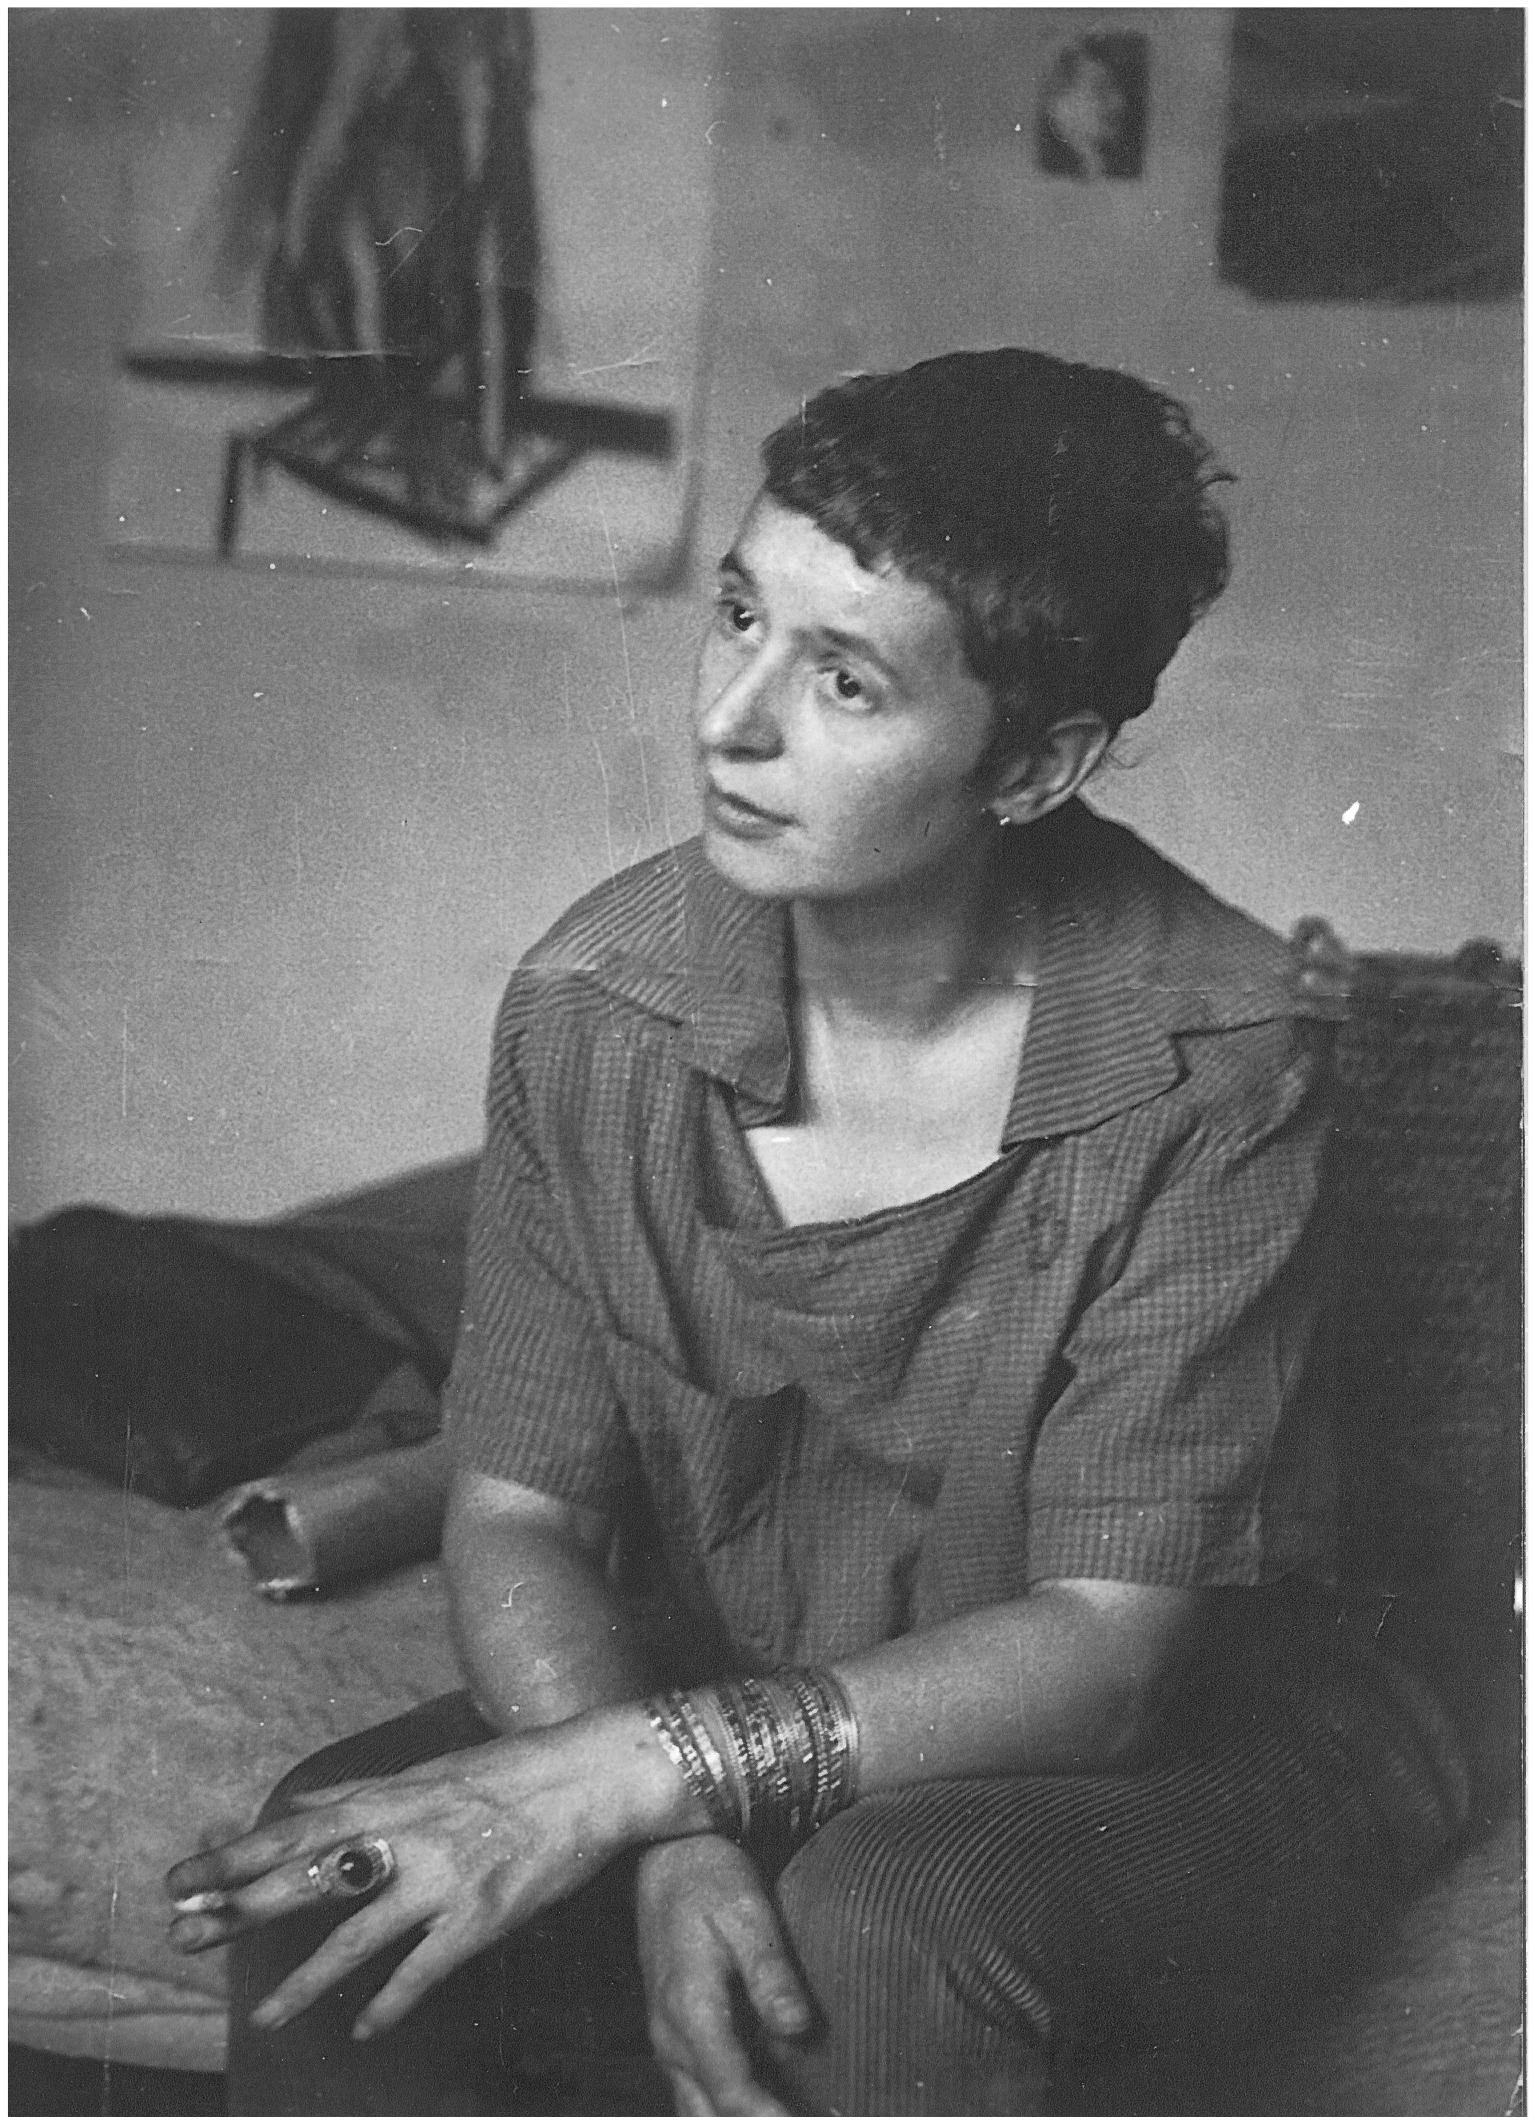 Dorothy Mead,photograph by Bryan Long, courtesy of Val and Bryan Long